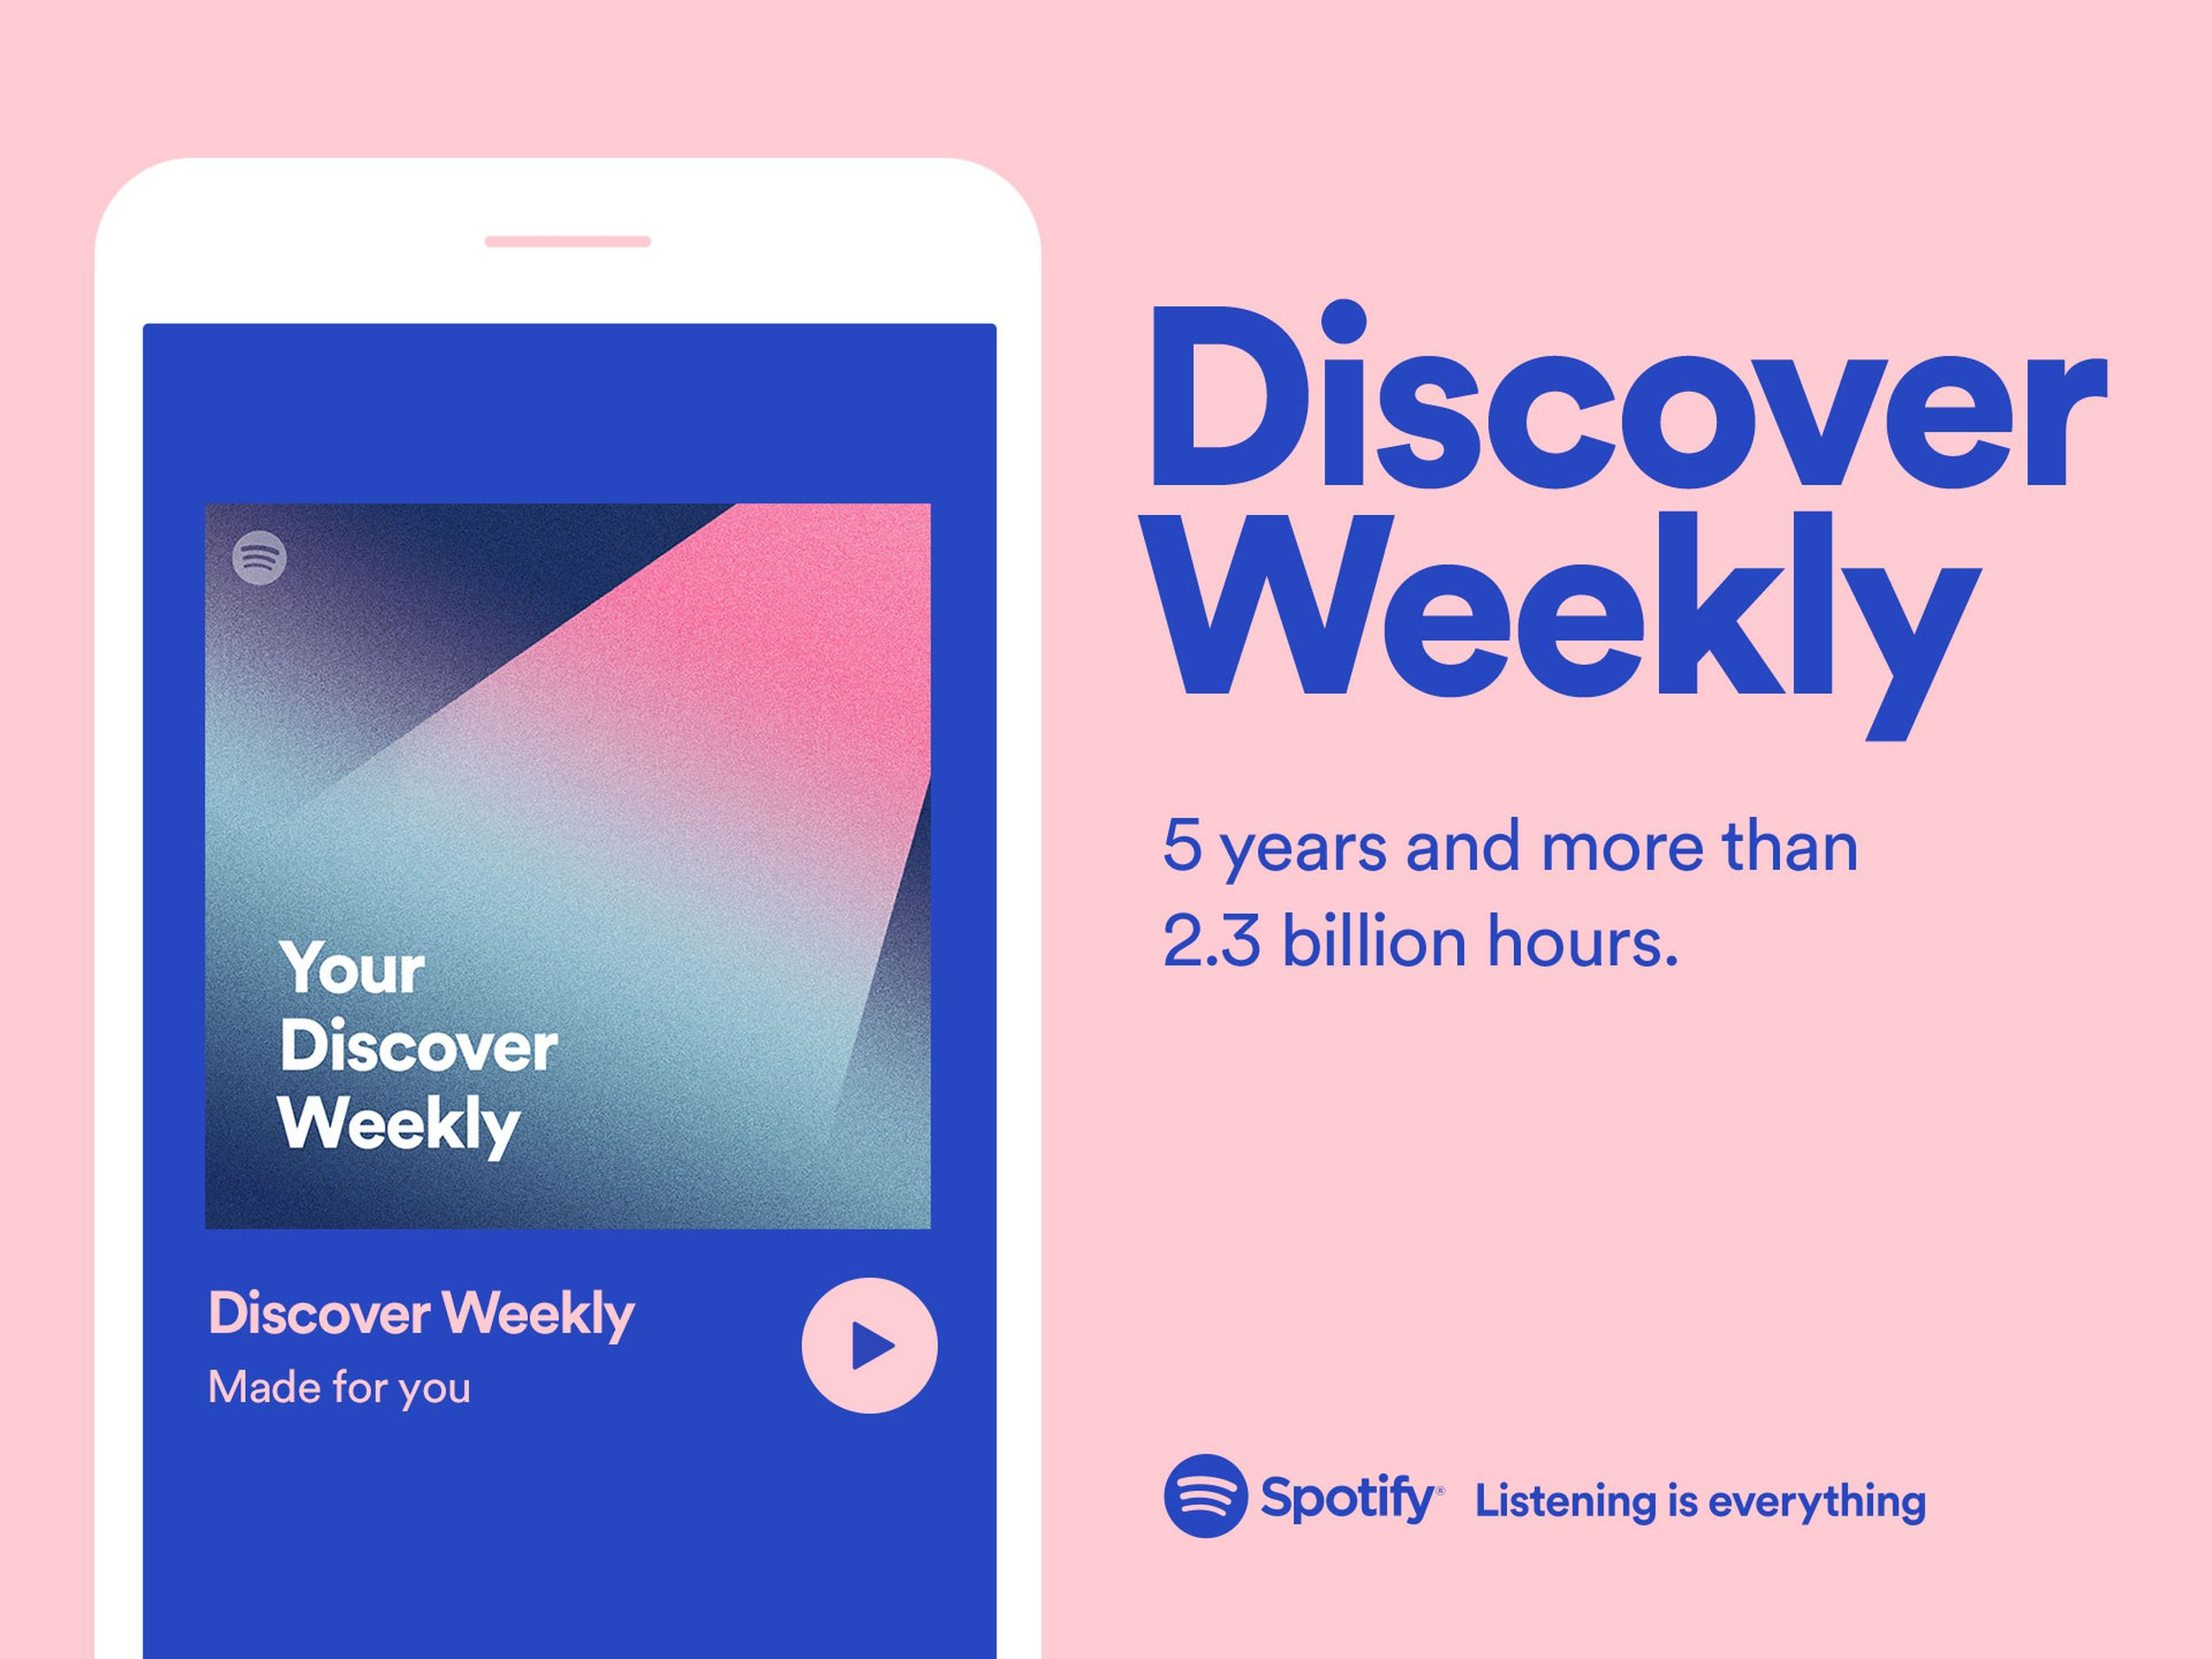 Spotify's Discover Weekly turns 5 | The Spokesman-Review